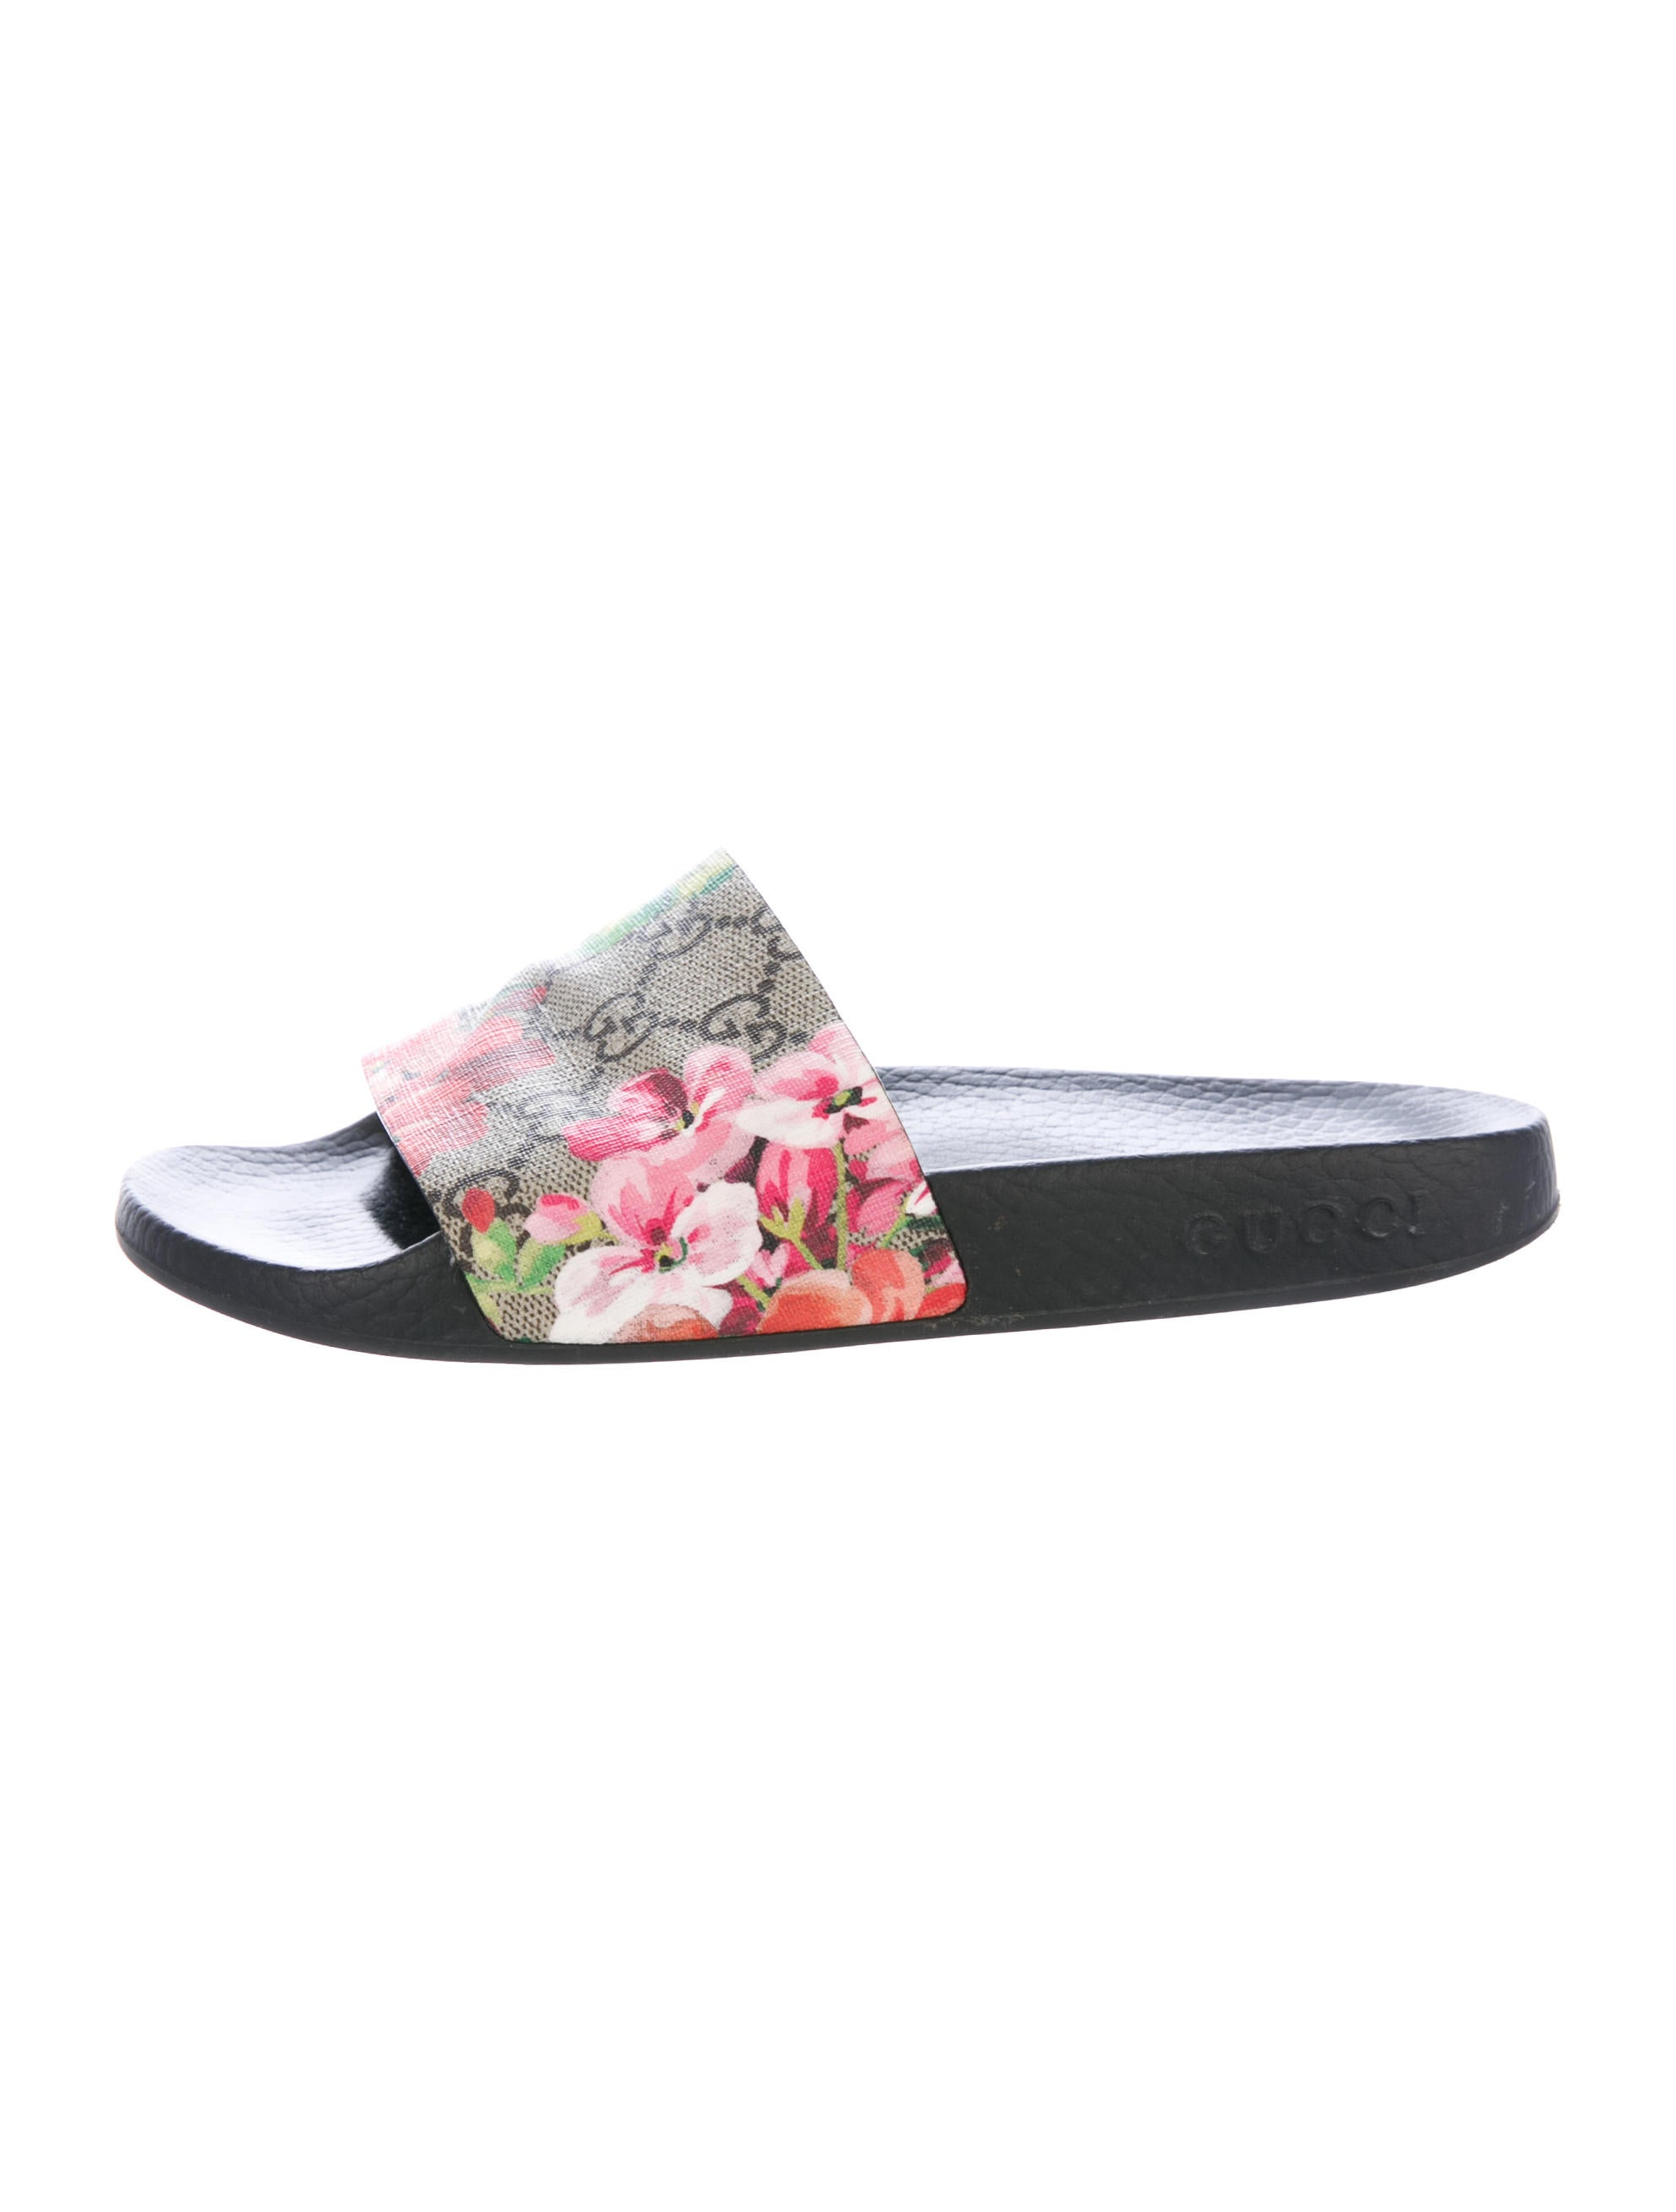 daa3fb541ad Gucci 2016 GG Blooms Slide Sandals - Shoes - GUC163999